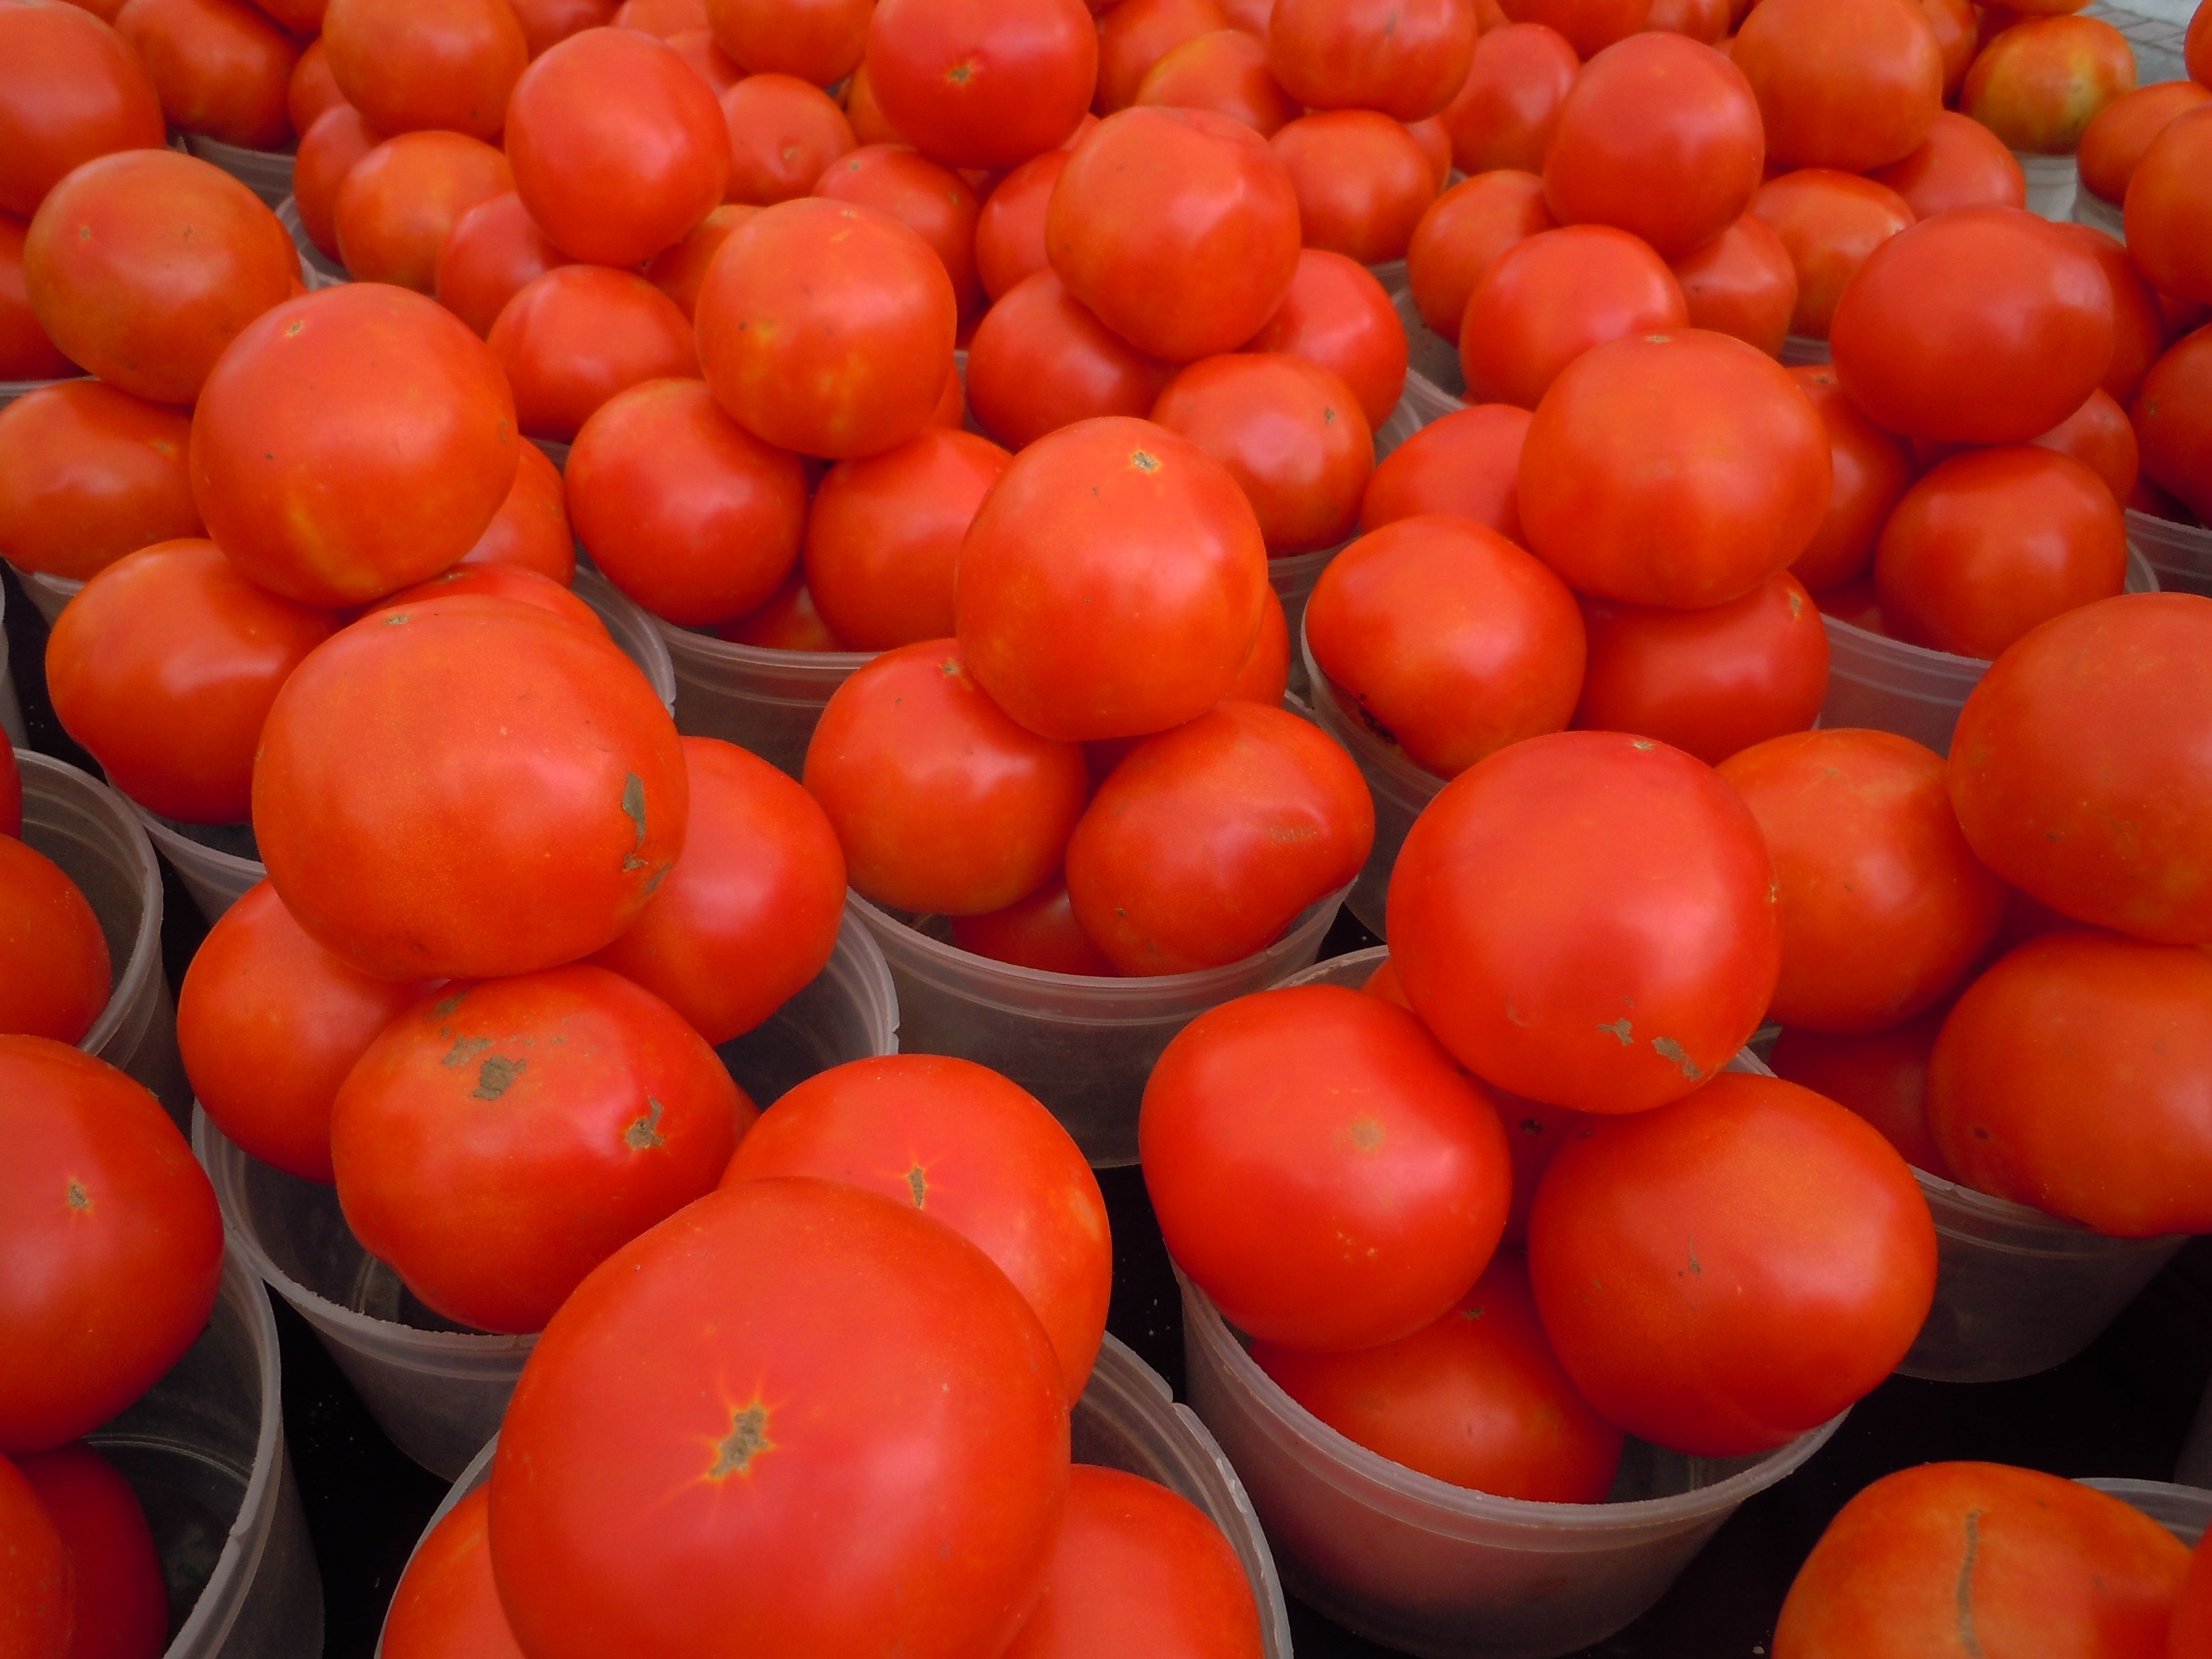 Bright red and delicious tomatoes available at the